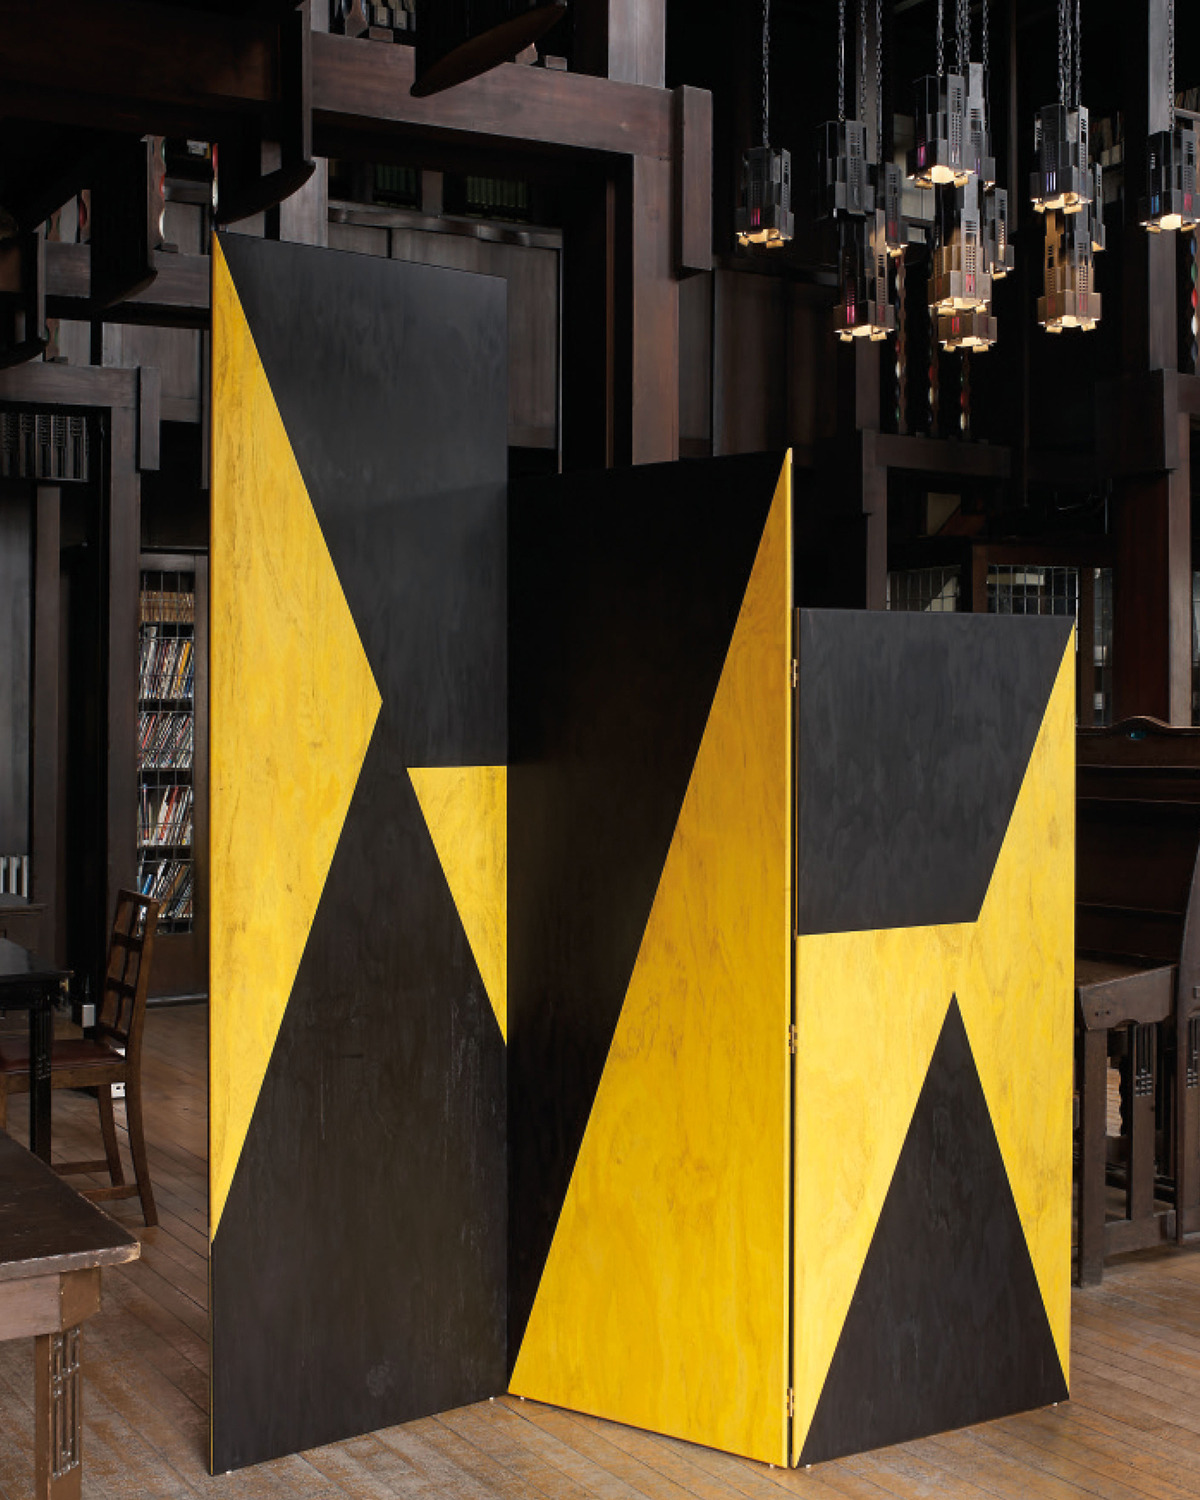 Martino Gamper, Yellow Meets Black Paravent, 2013, Coloured plywood, 228 x 213 x 2 cm, Installation view, Mackintosh Building, Glasgow School of Art, 2014